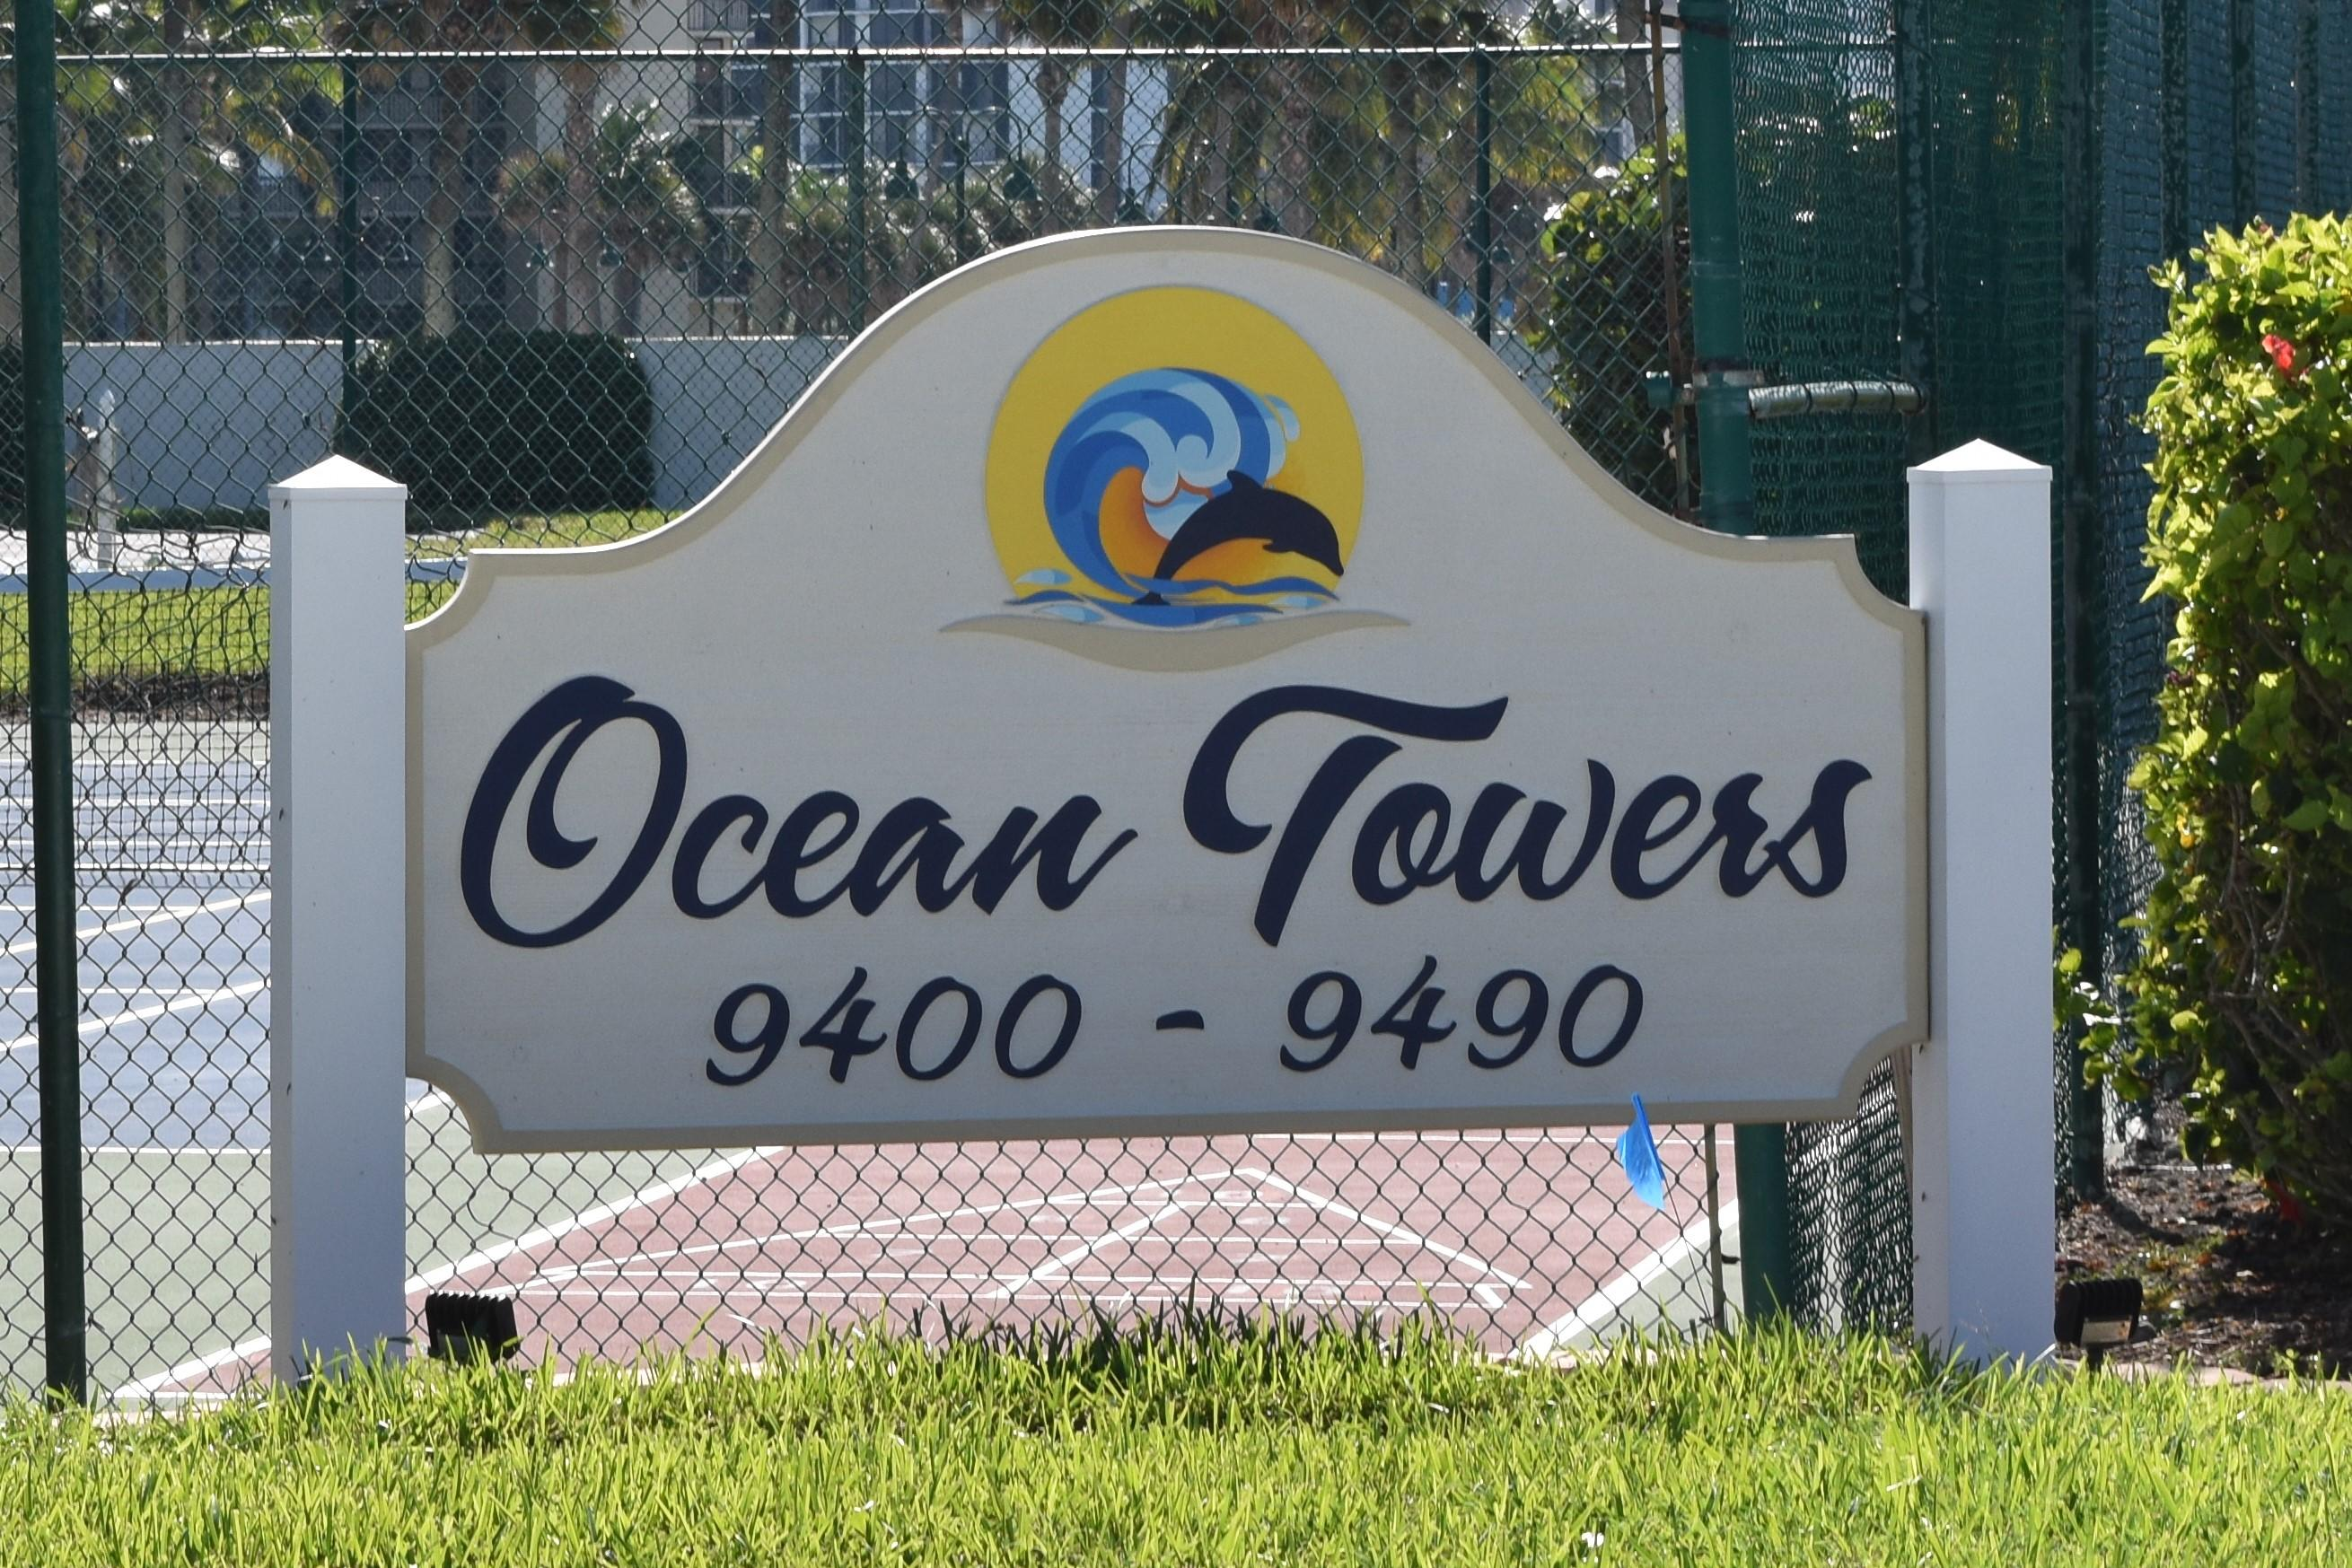 OCEAN TOWERS JENSEN BEACH REAL ESTATE